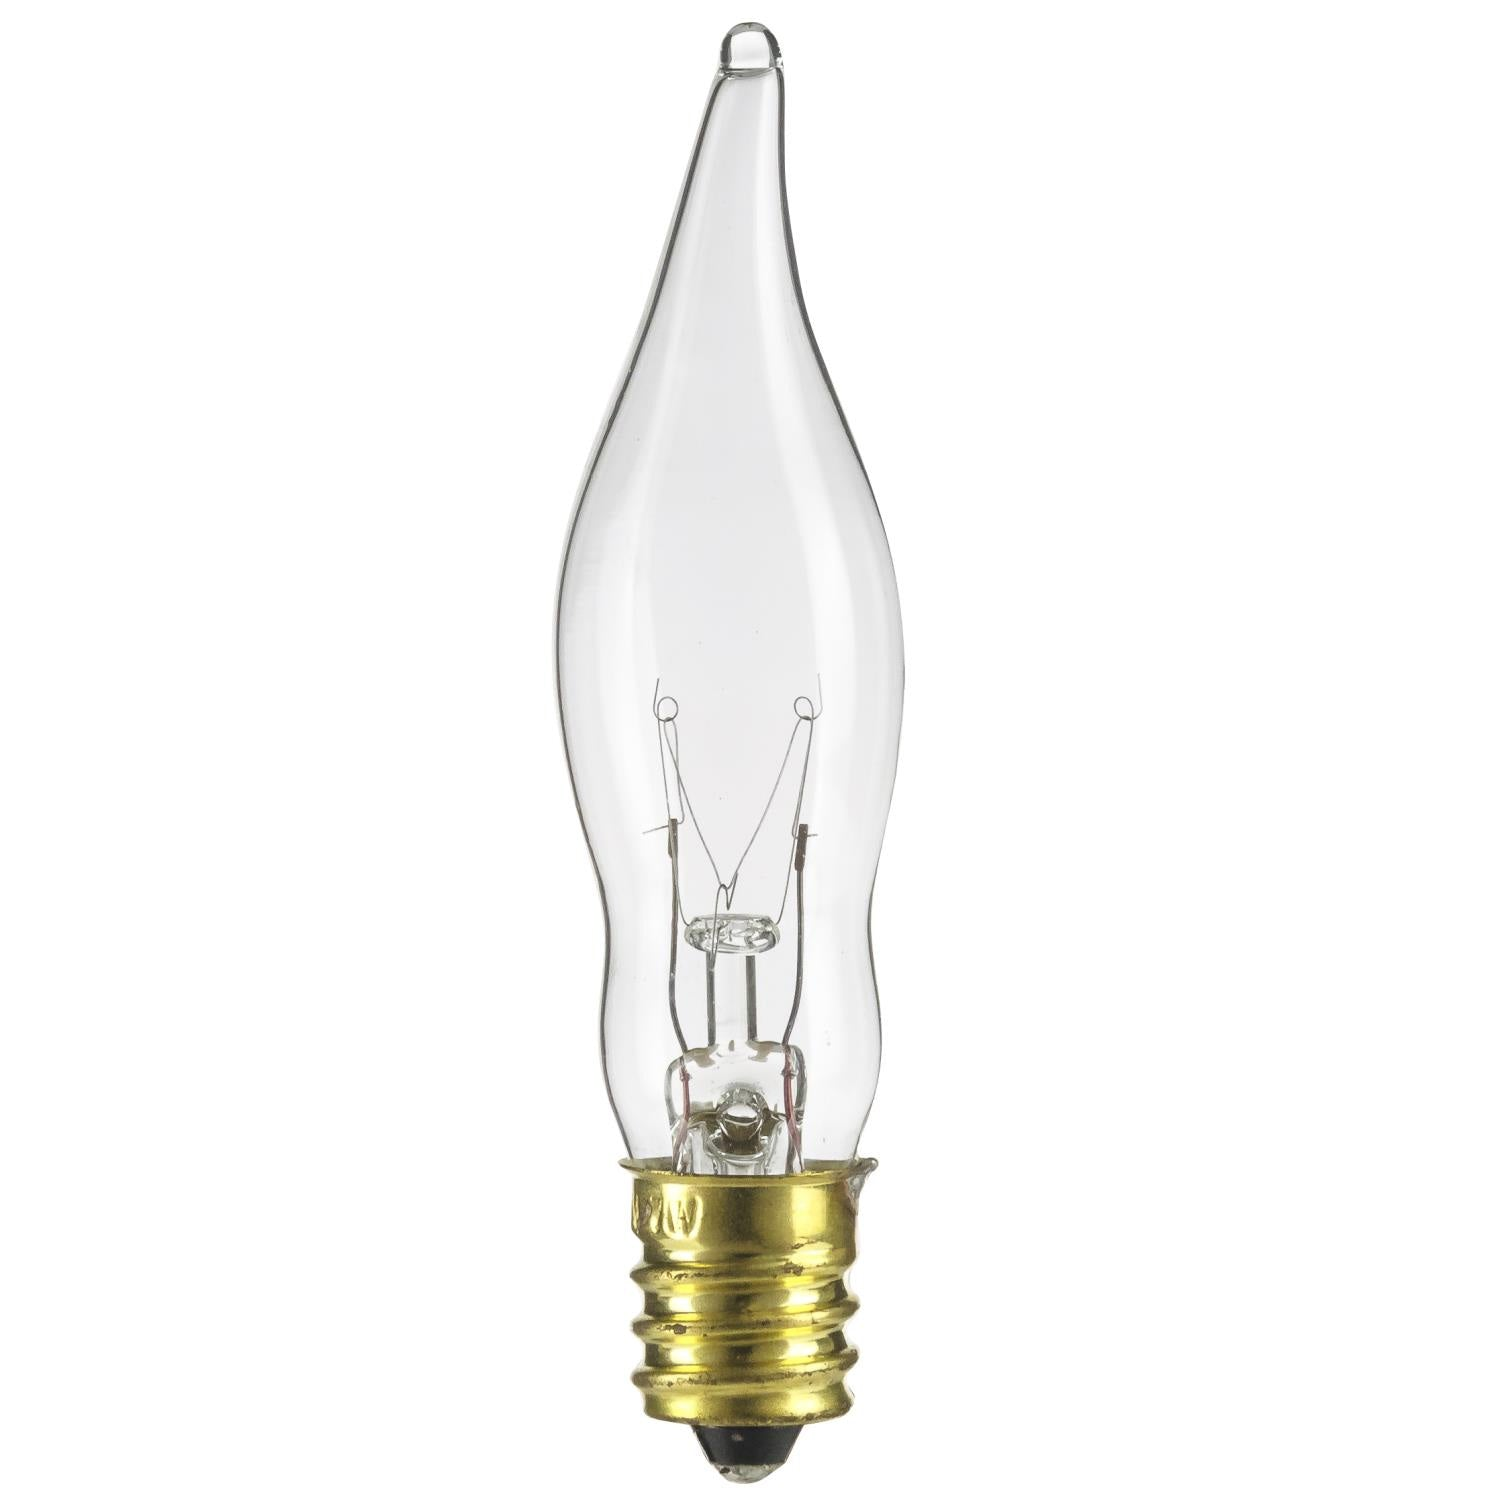 SUNLITE 7 watt Flame 120v Petite Chandelier Incandescent light bulb